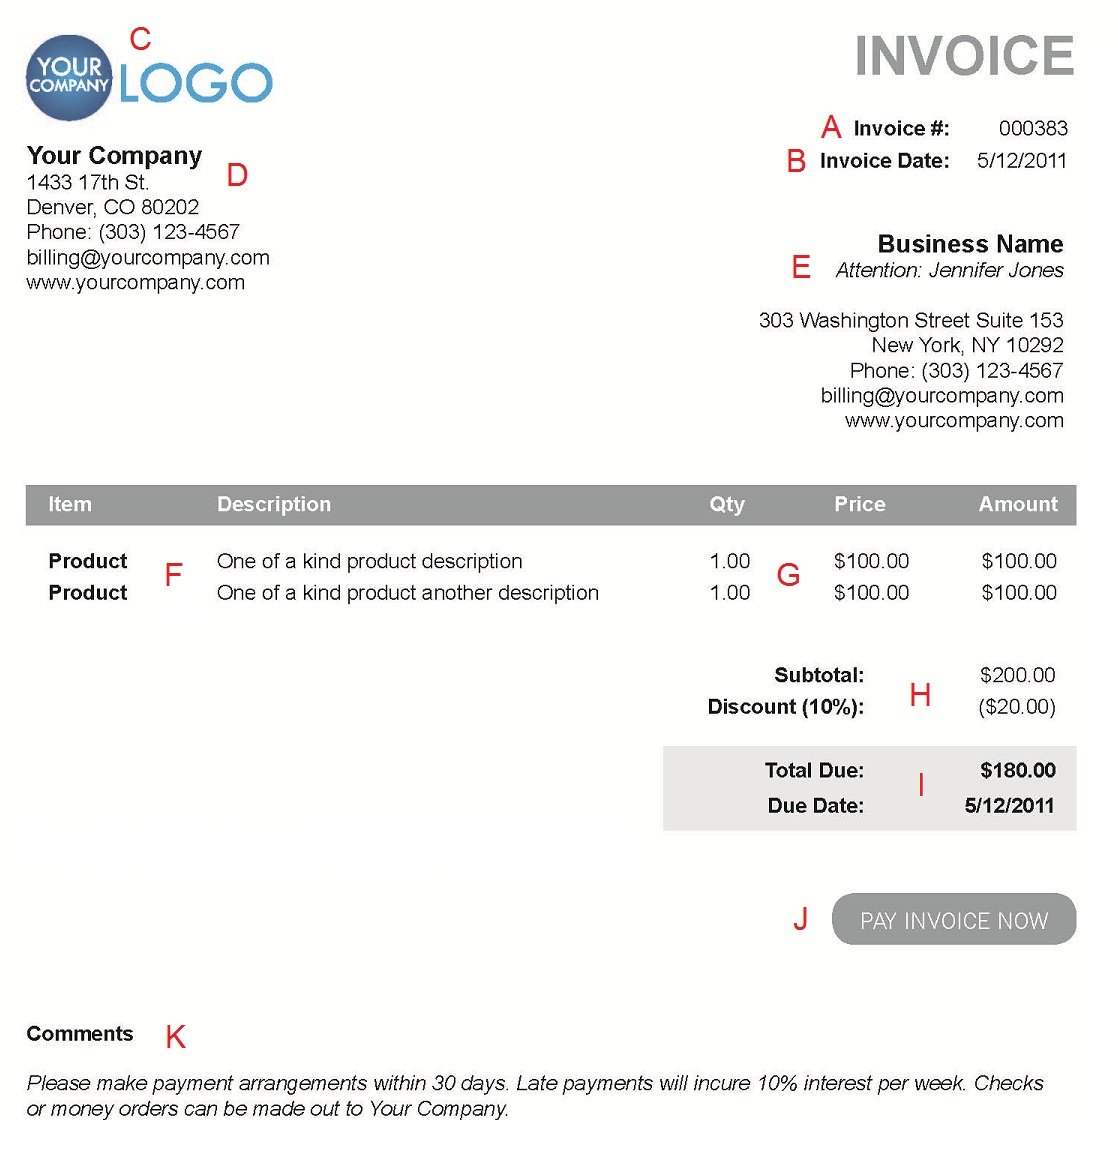 Proatmealus  Terrific The  Different Sections Of An Electronic Payment Invoice With Goodlooking A  With Beauteous Adams Invoices Also How To Make An Invoice On Ebay In Addition Quickbooks Mobile Invoicing And Word Doc Invoice As Well As What Is Dealer Invoice Price Mean Additionally Credit Card Invoice From Paysimplecom With Proatmealus  Goodlooking The  Different Sections Of An Electronic Payment Invoice With Beauteous A  And Terrific Adams Invoices Also How To Make An Invoice On Ebay In Addition Quickbooks Mobile Invoicing From Paysimplecom